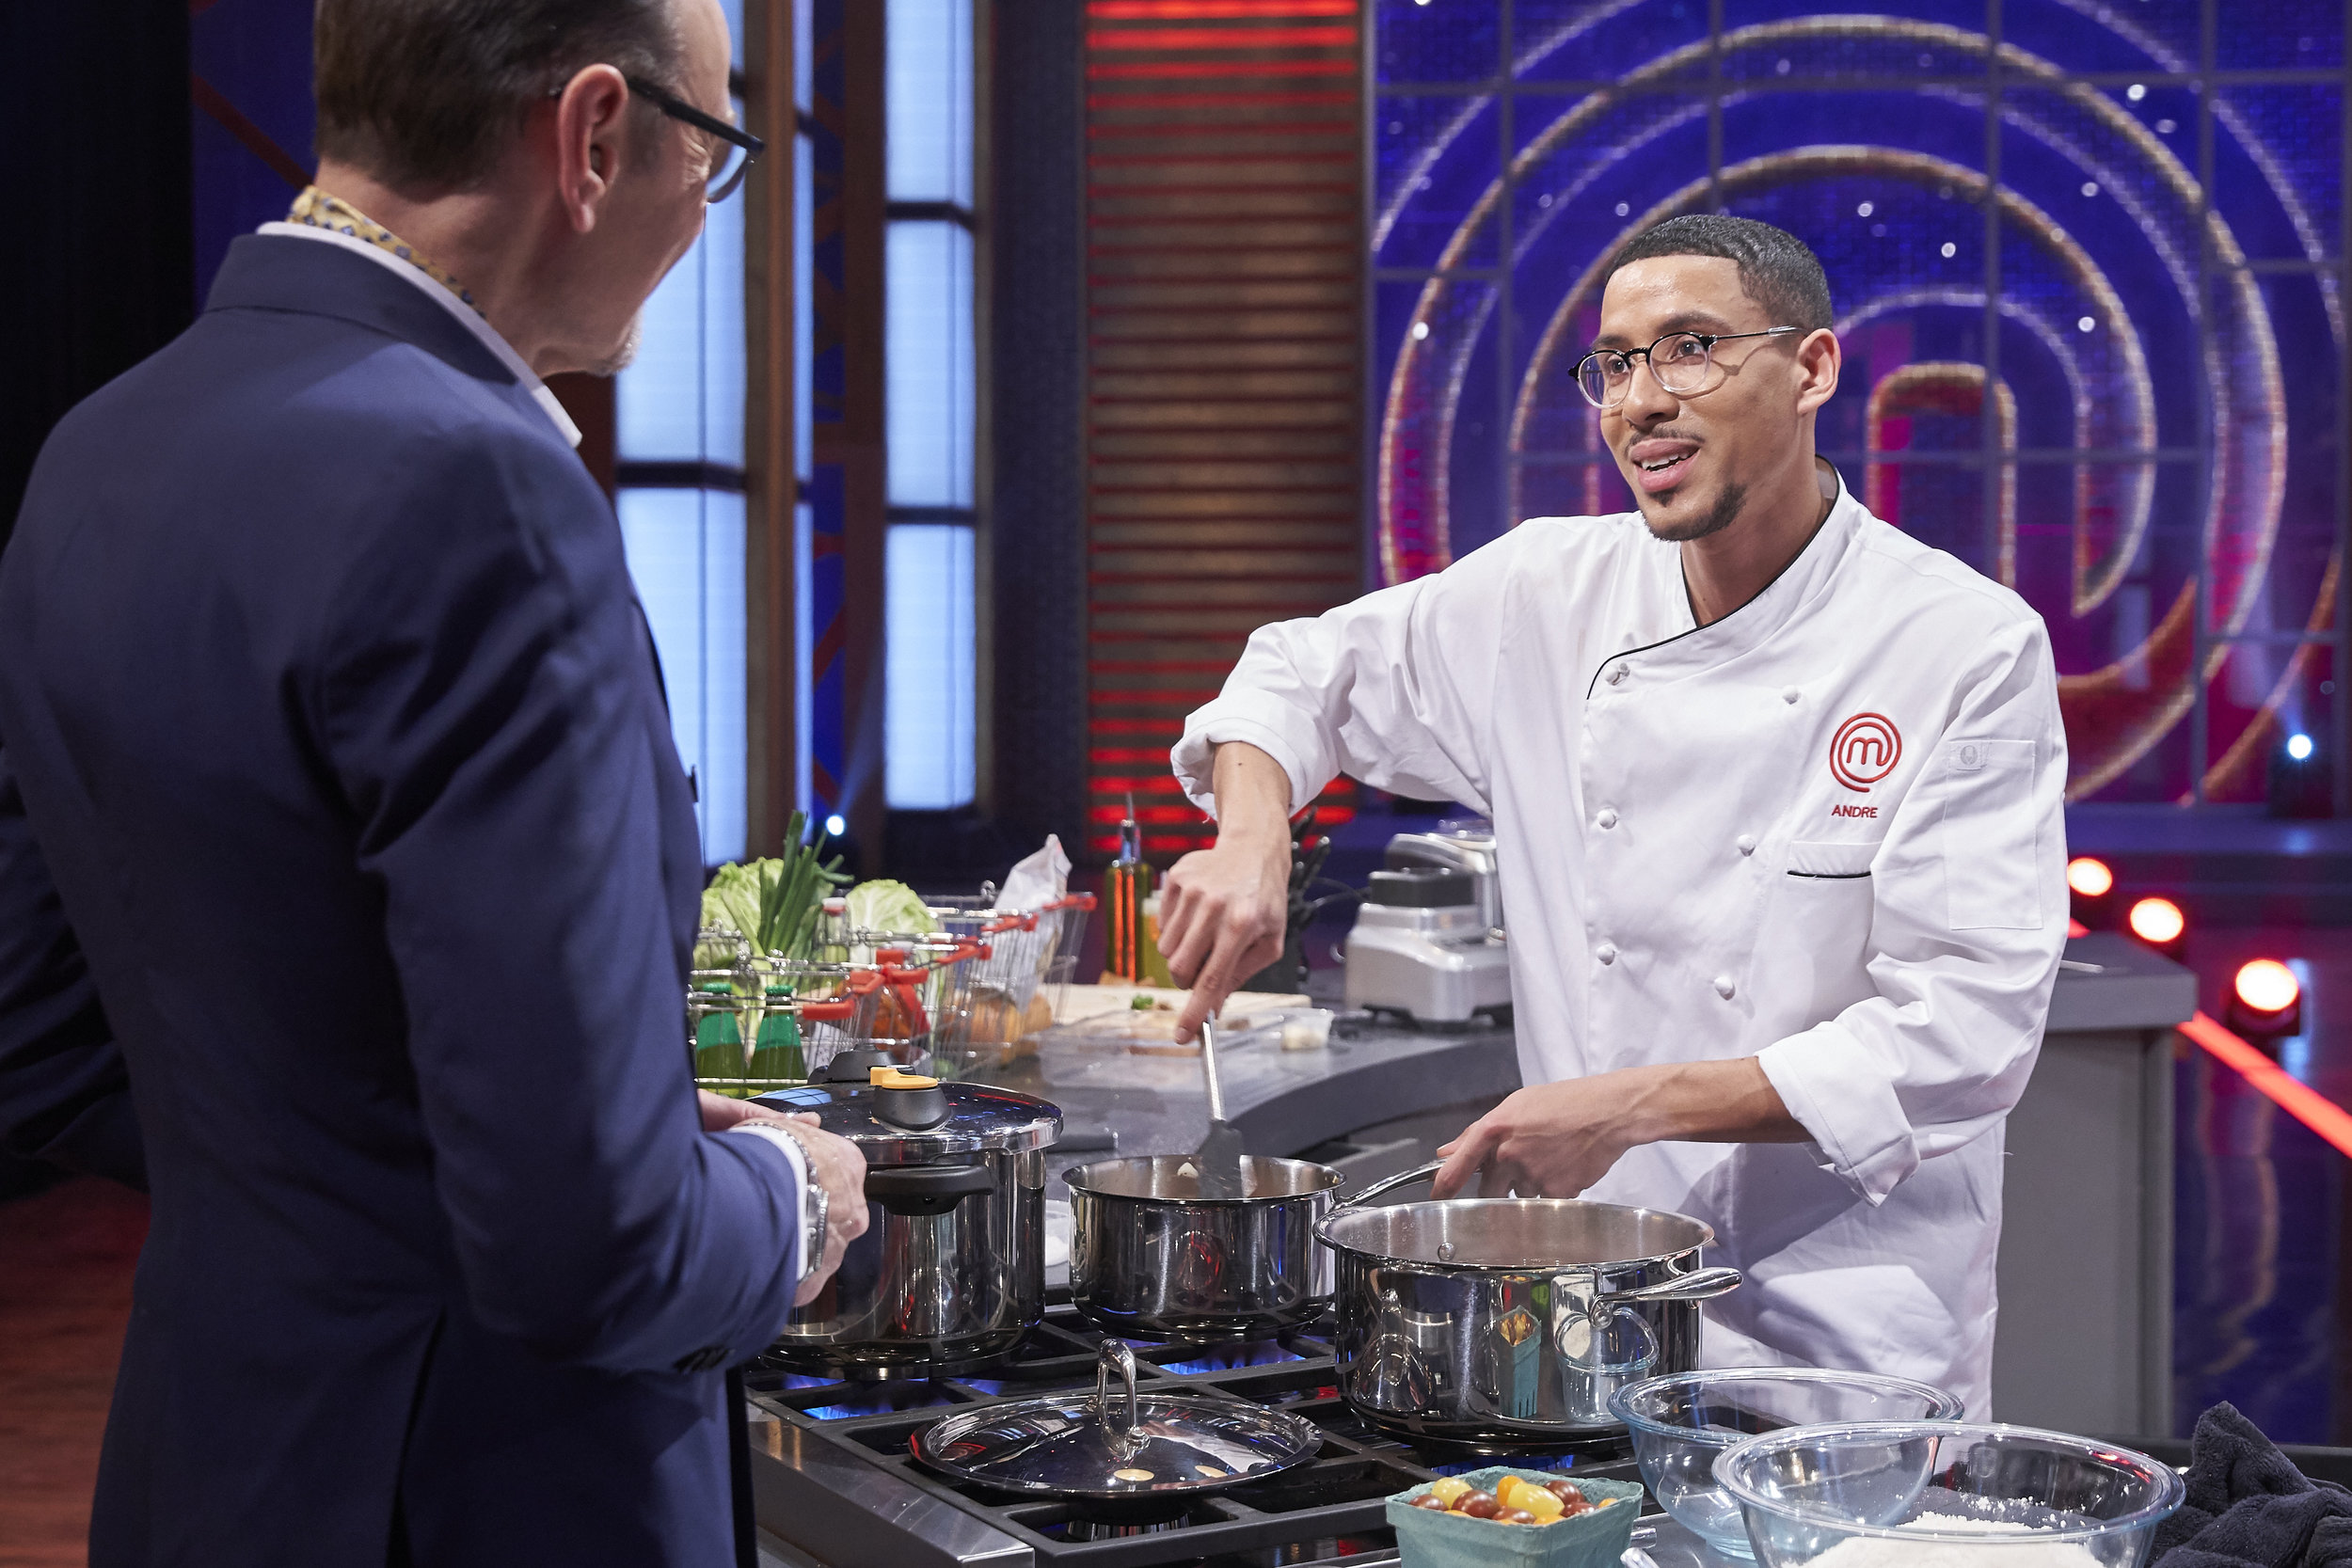 MasterChef Canada runner-up Andre Bhagwandat